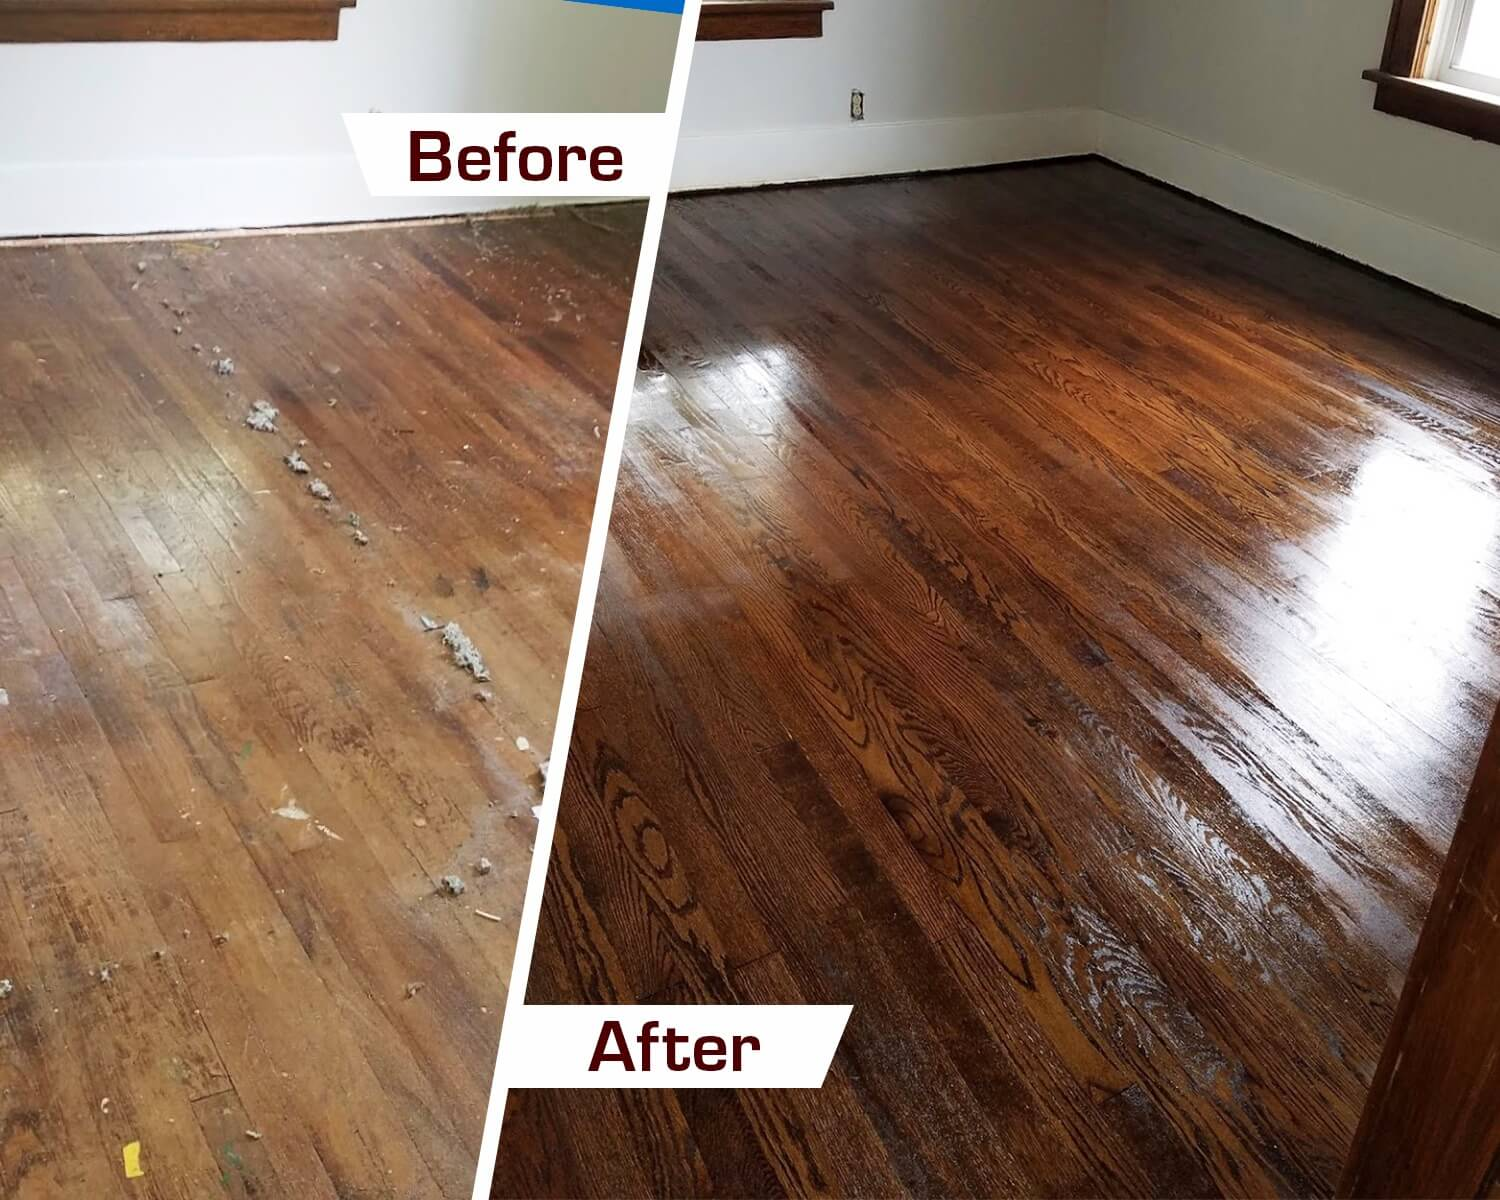 Before and after hardwood floor refinishing in Arlington Heights, IL